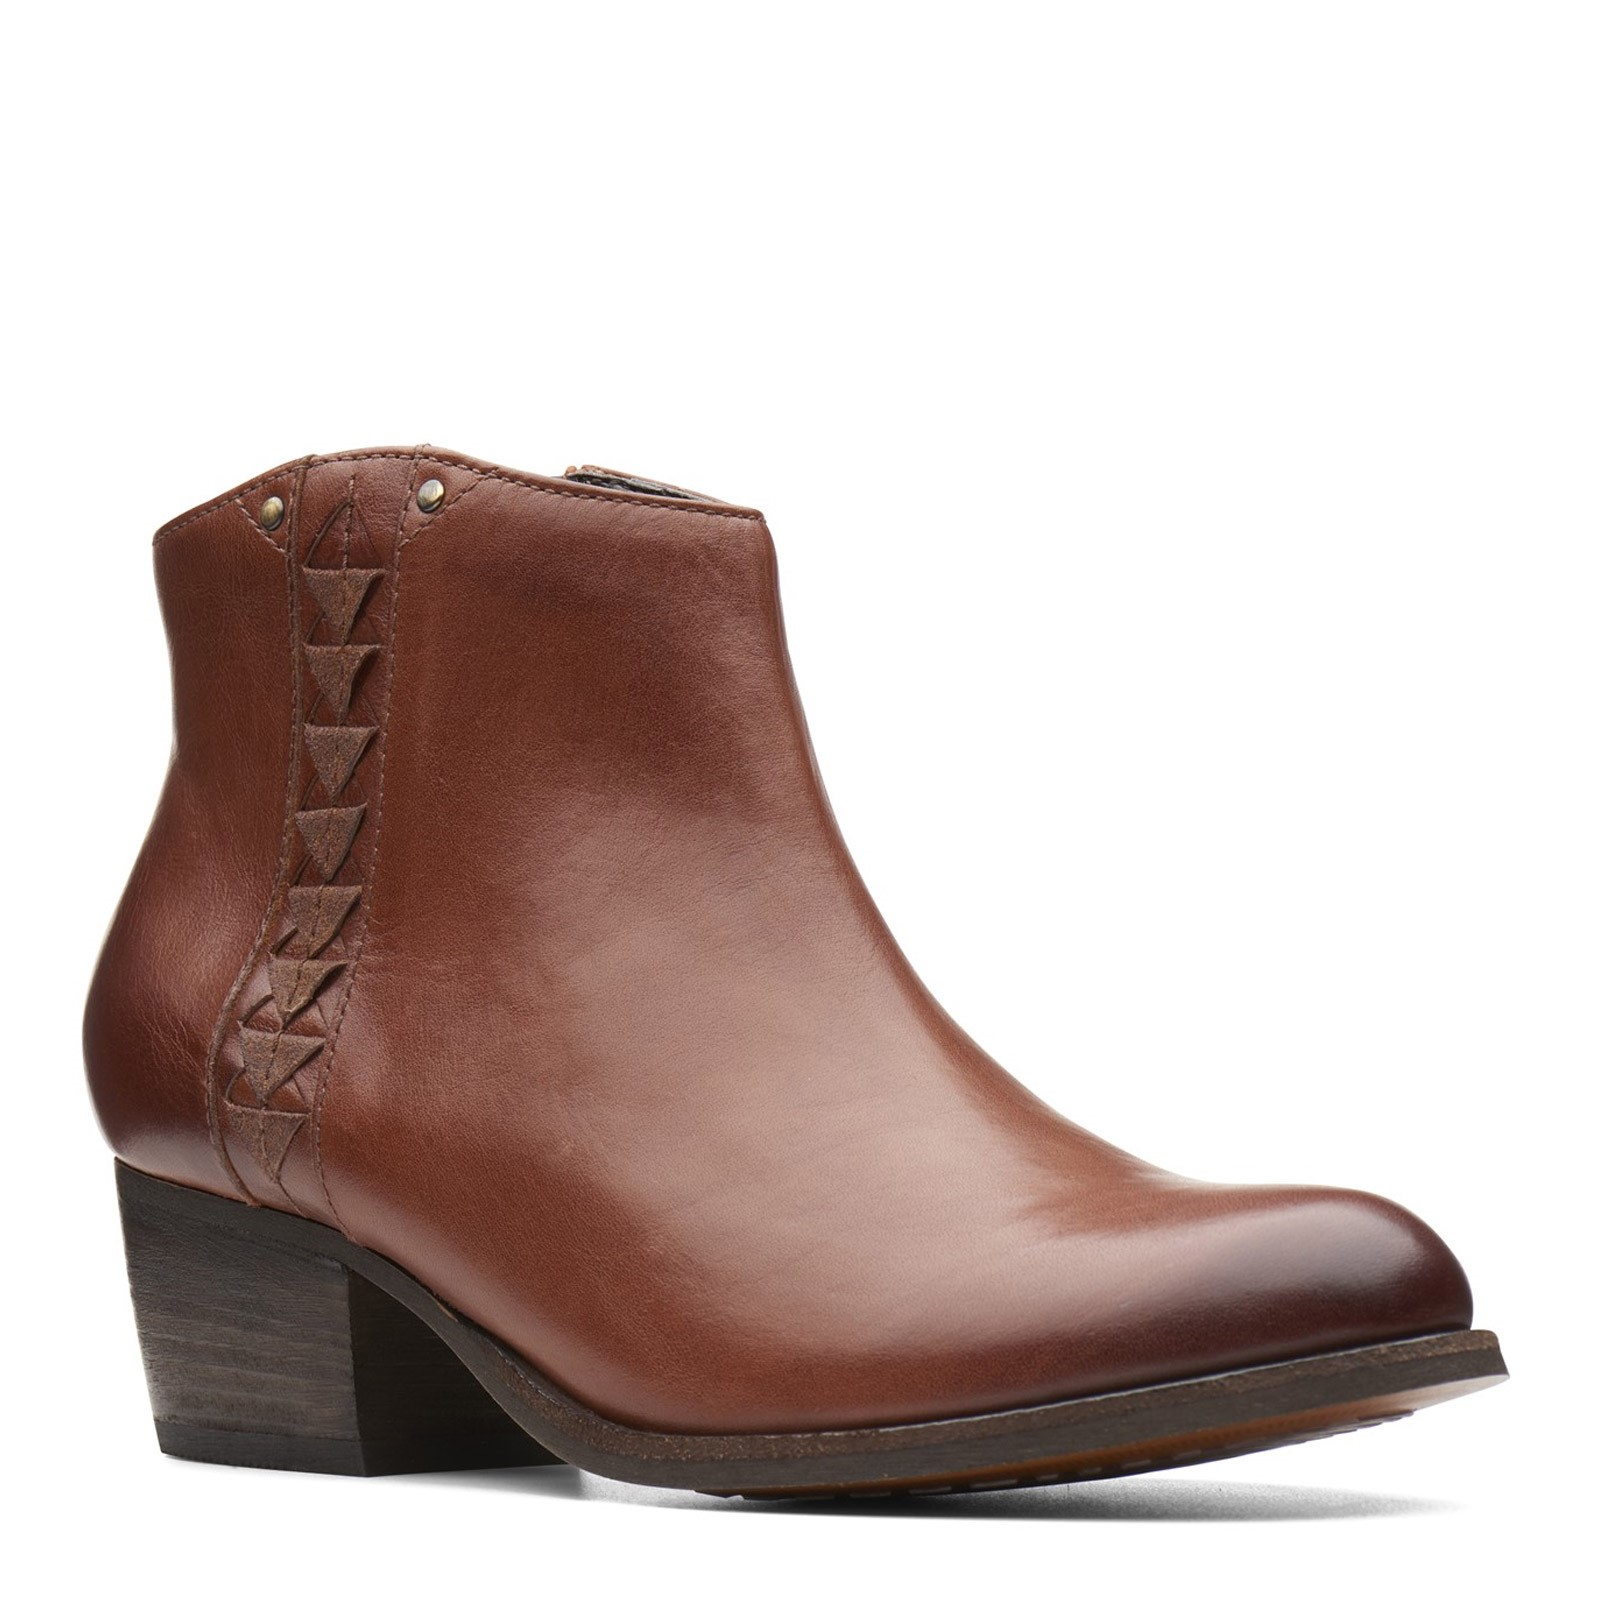 Women's Clarks, Maypearl Fawn Ankle Boots